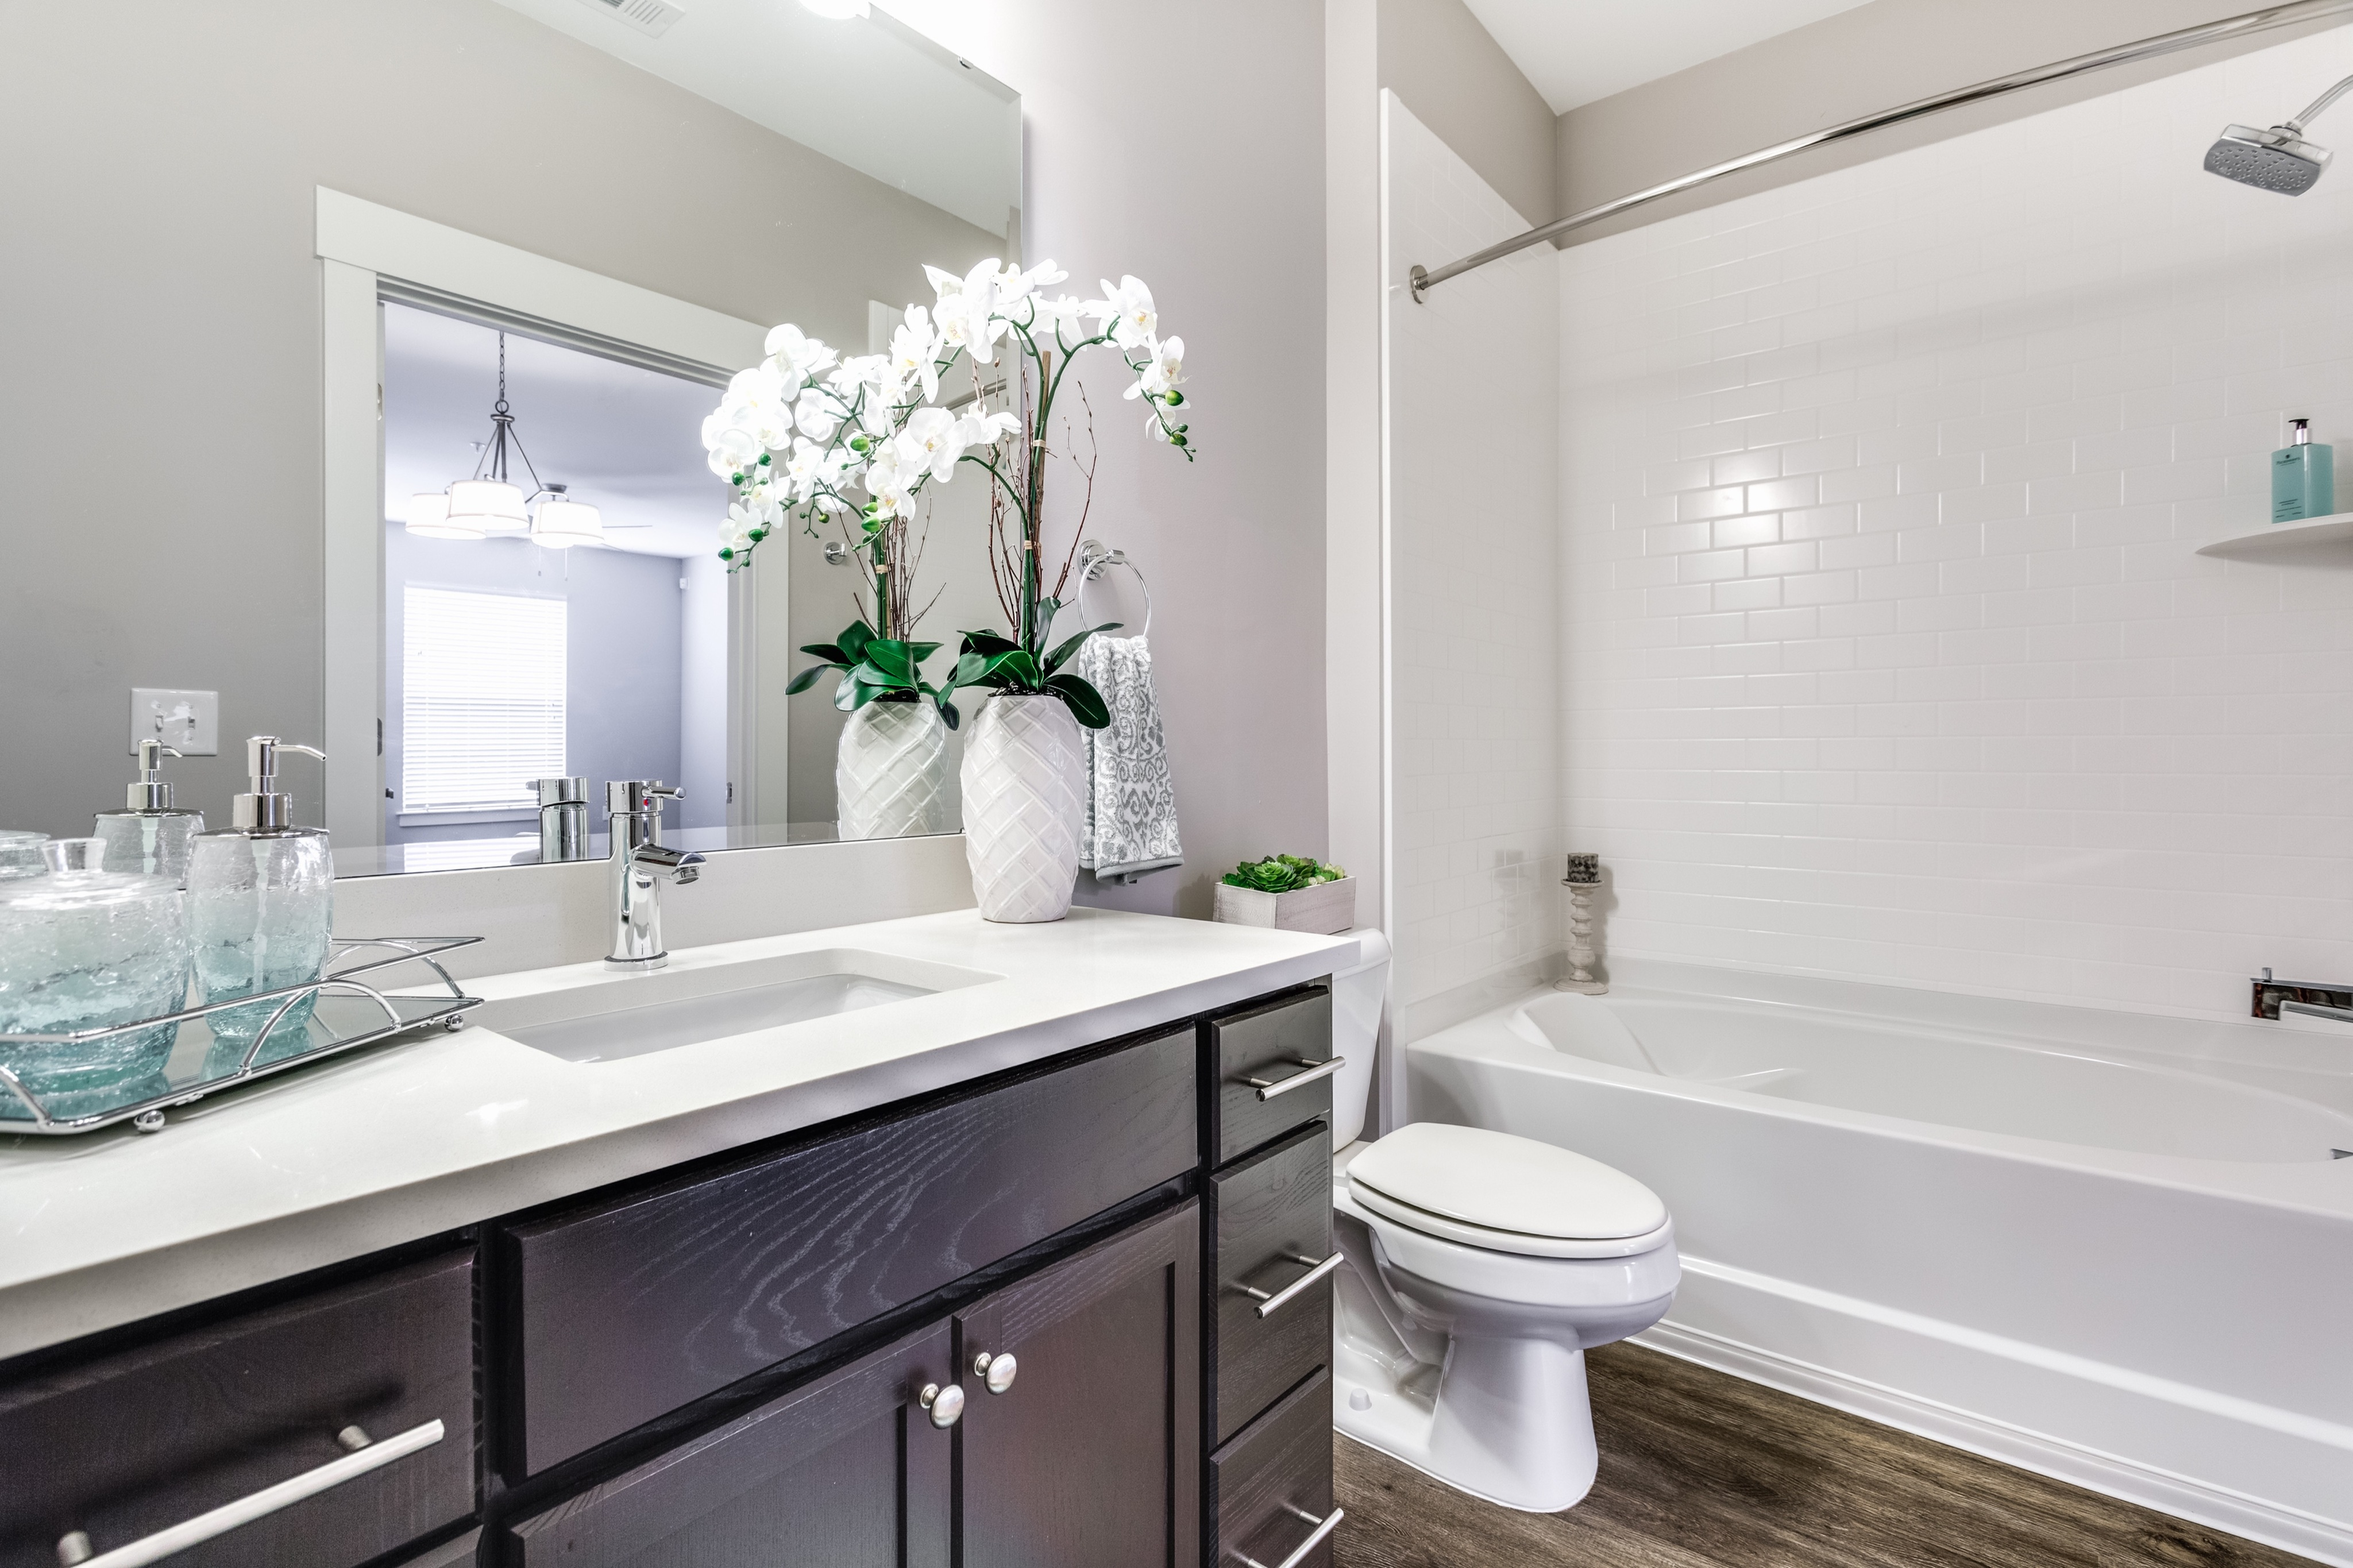 View of Renovated Apartment Interiors, Showing Bathroom With Garden Tub, Plank Flooring, and Single Vanity at Cottonwood Reserve Apartments